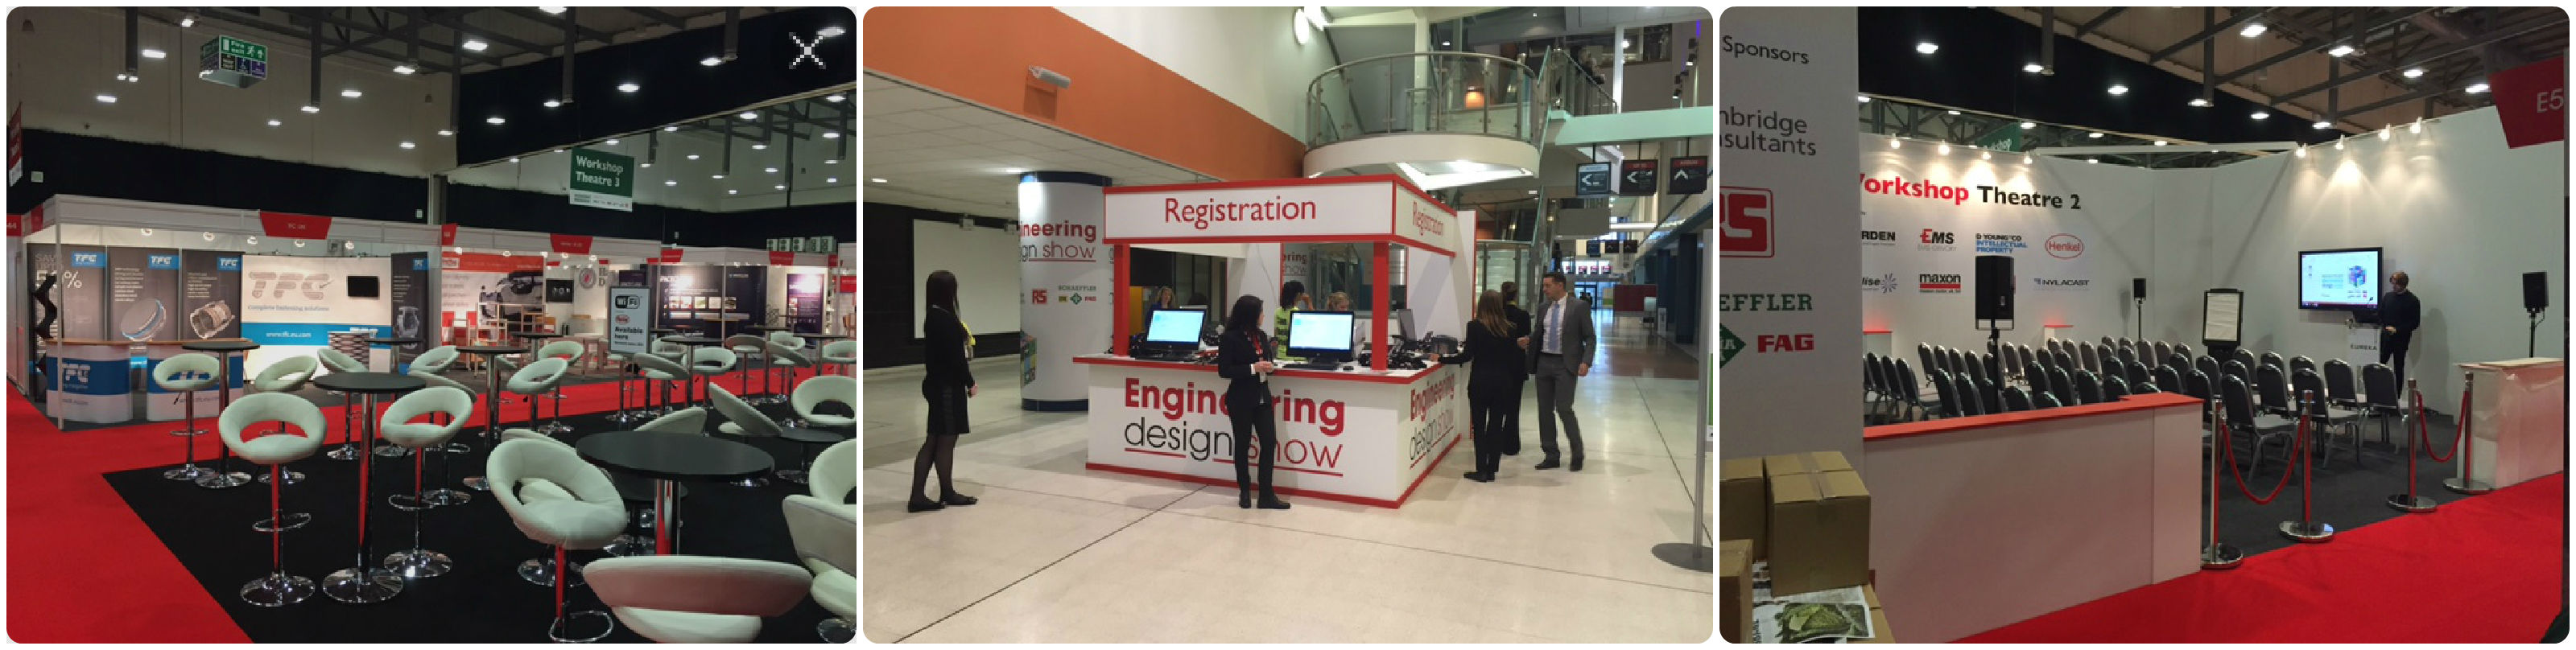 Engineering Design Show stands